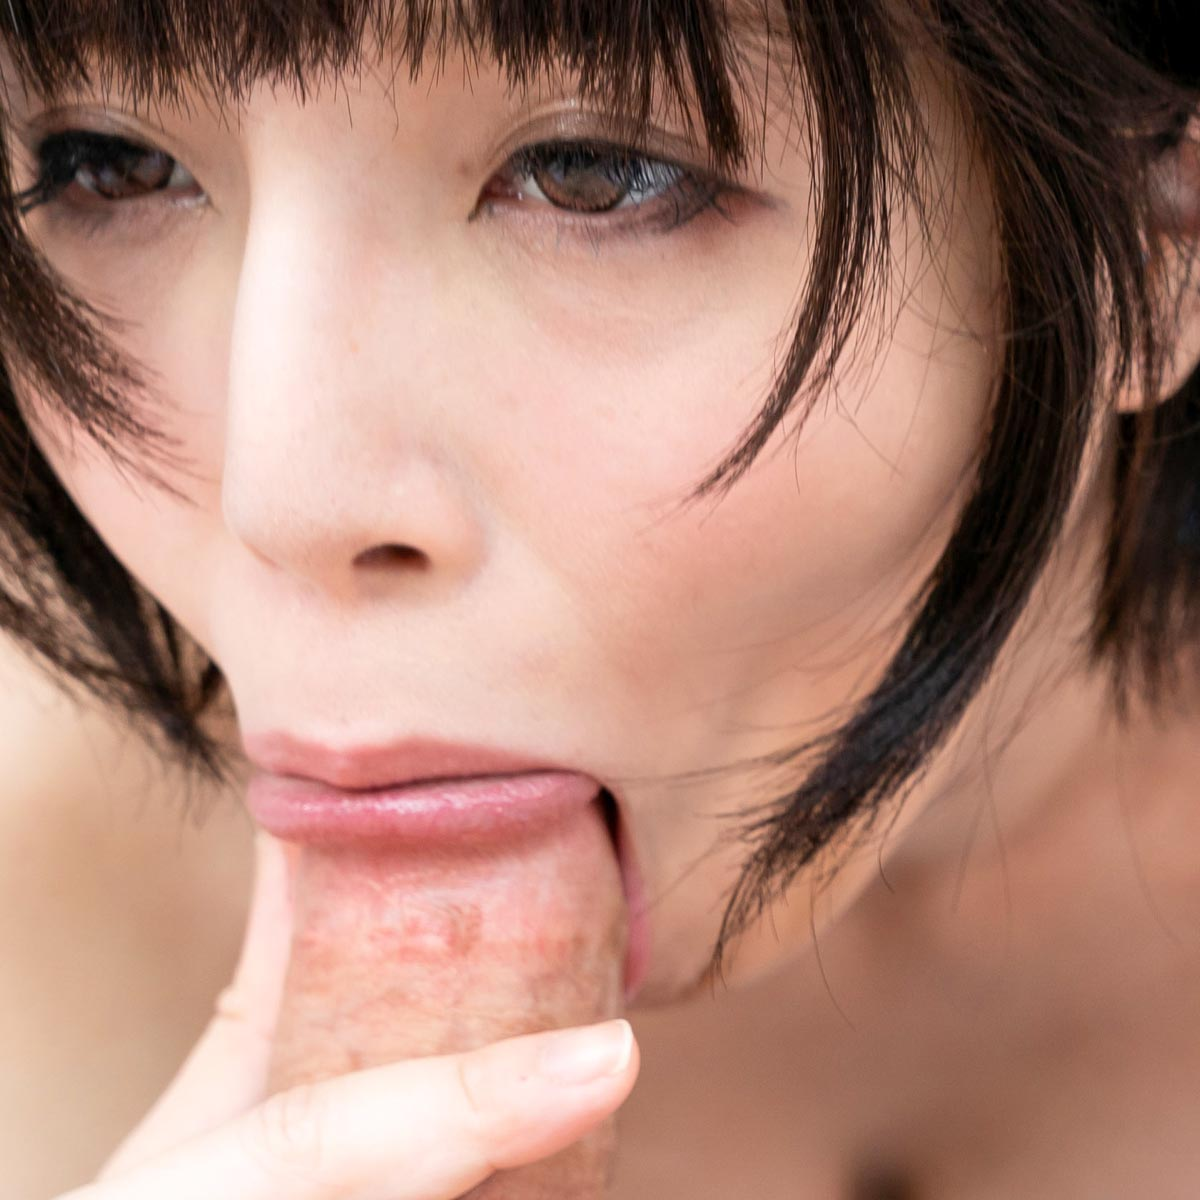 Fellatio Japan, Blowjob, Facial and Cumshot porn. Uncensored videos of nude girls, sucking cock, blowing and swallowing. FellatioJapan.